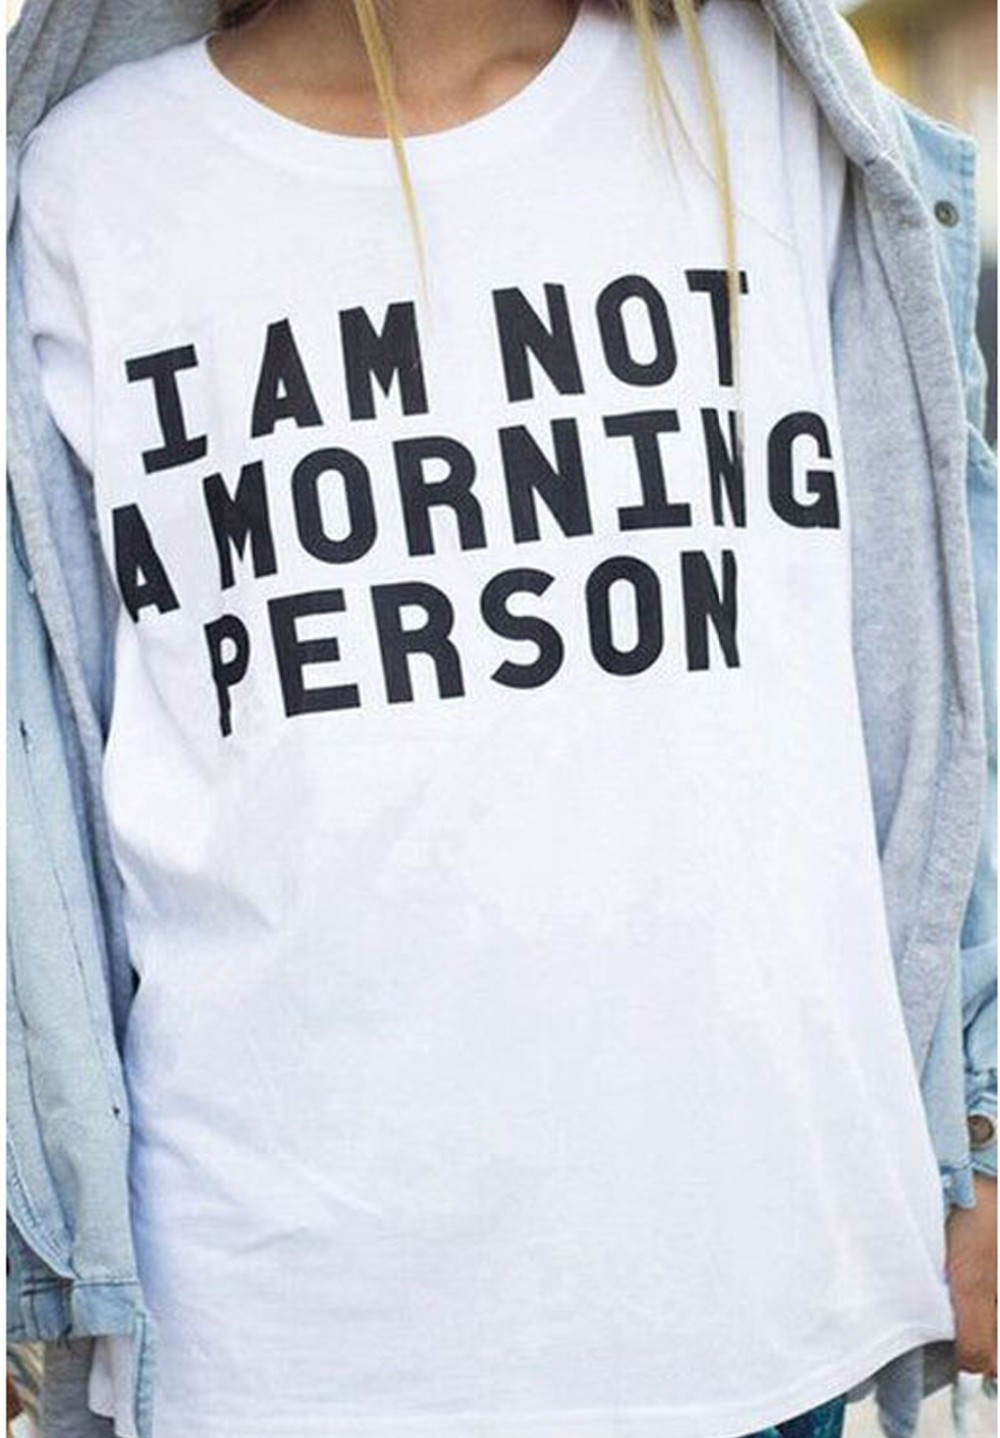 Aliexpress.com : Buy H218 I AM NOT A MORNING PERSON Letters Print T shirt Woman White Funny Tees Top from Reliable tee shirt online shop suppliers on TOO MANY TIGHTS!